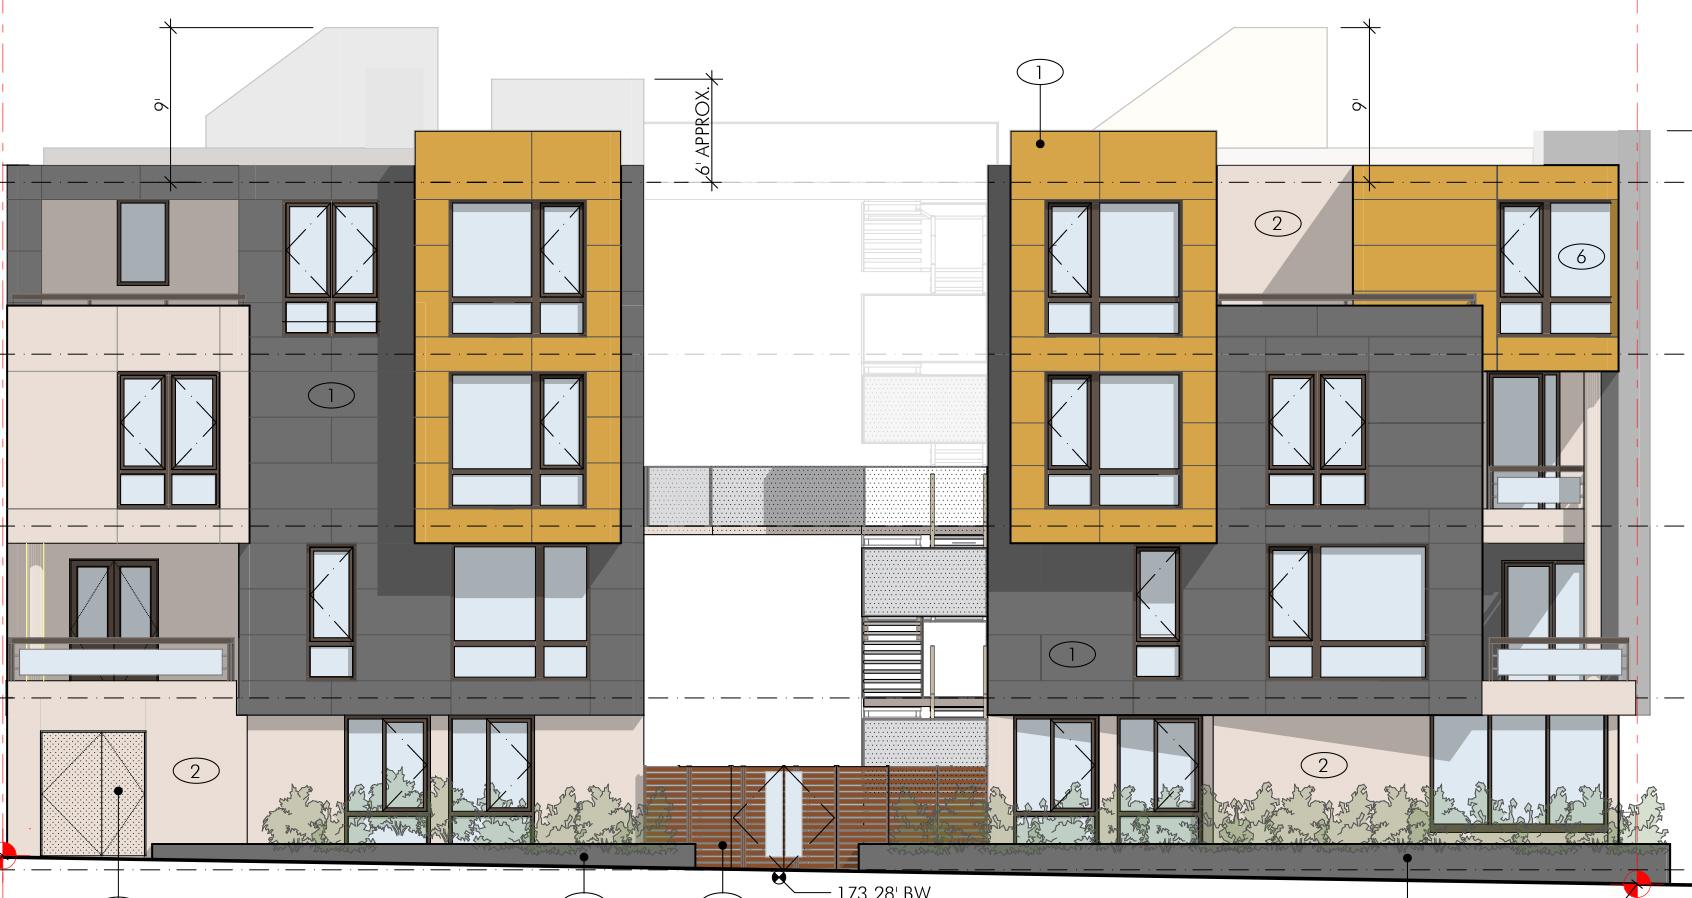 Two 4 Story Apartment Buildings Proposed For Current Gas Station Lot At 4th California